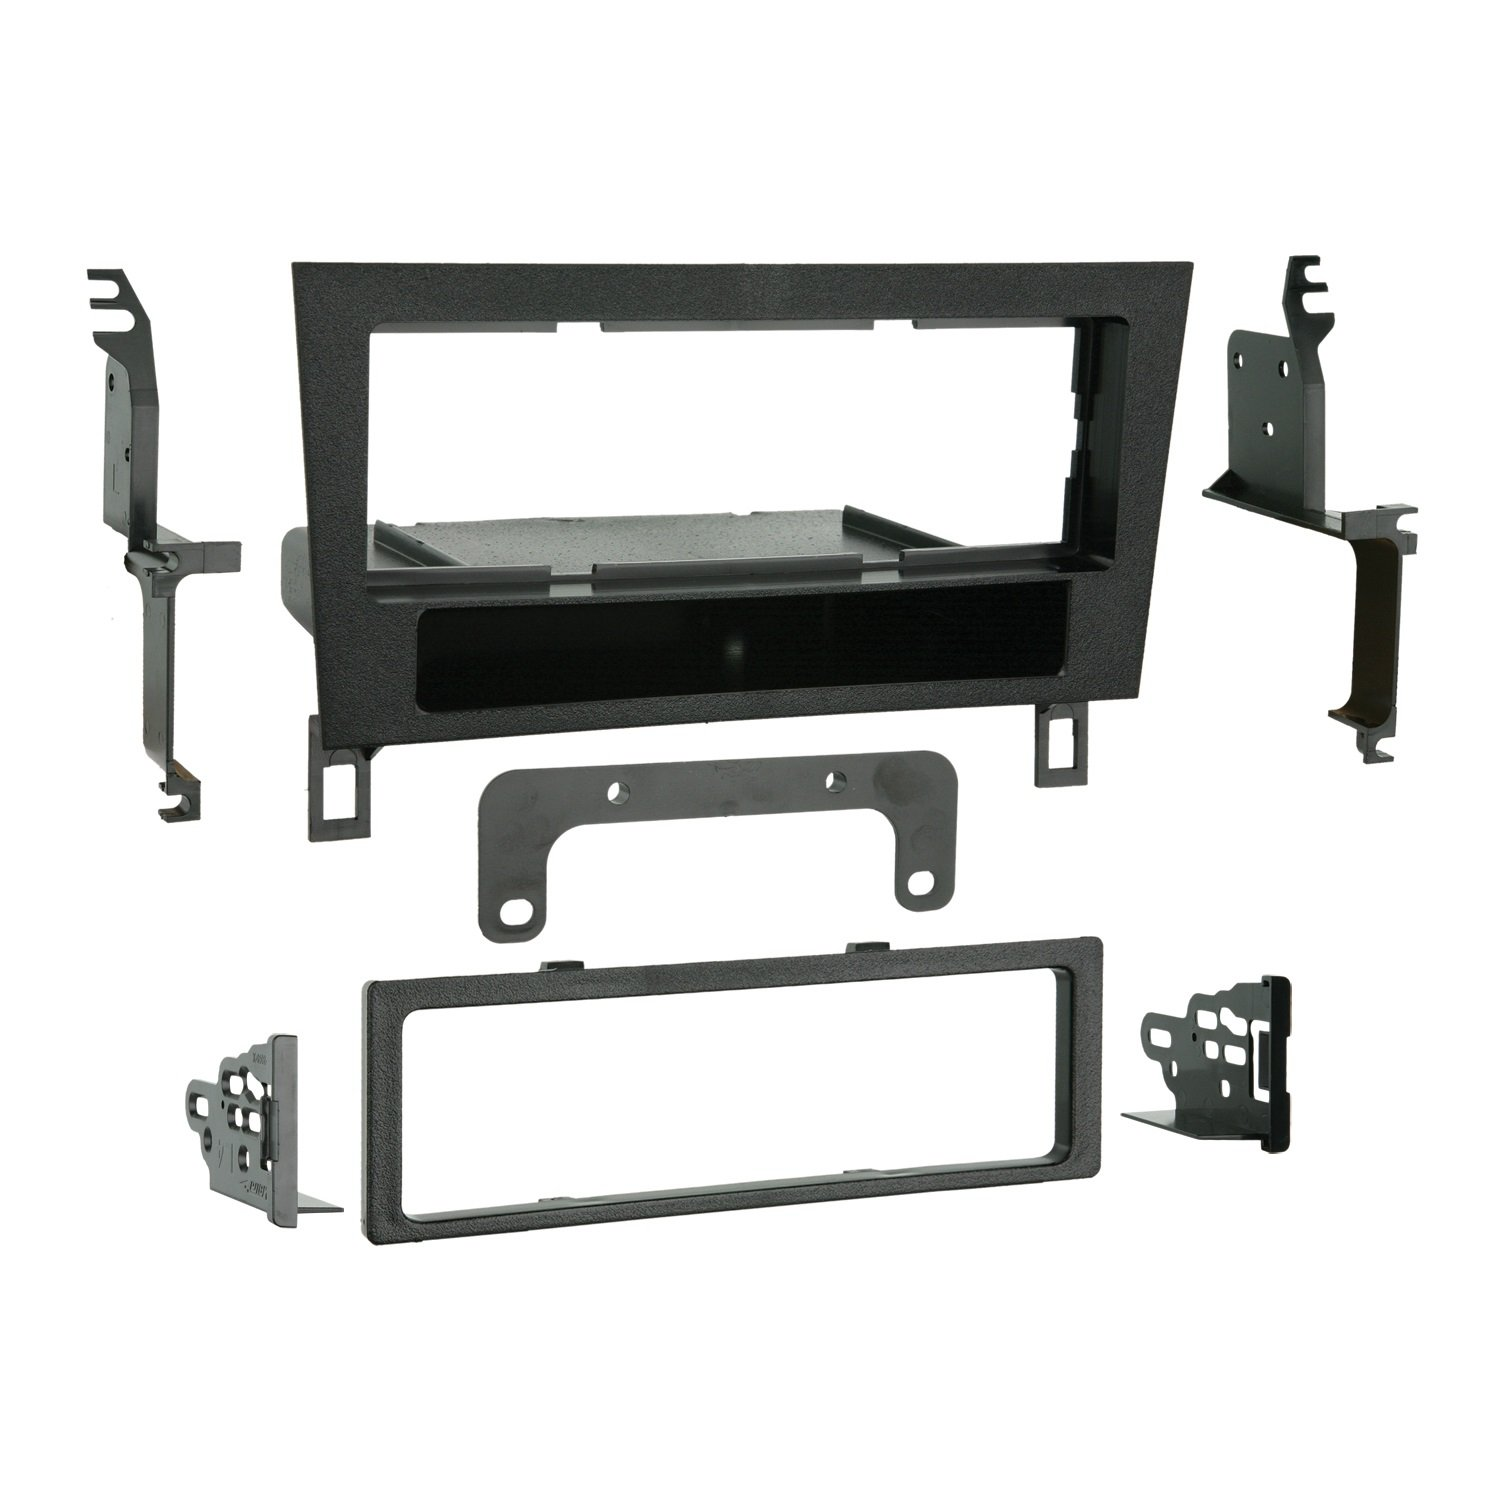 Metra 99-8156 Single DIN Installation Dash Kit for 1990-1994 Lexus LS 400